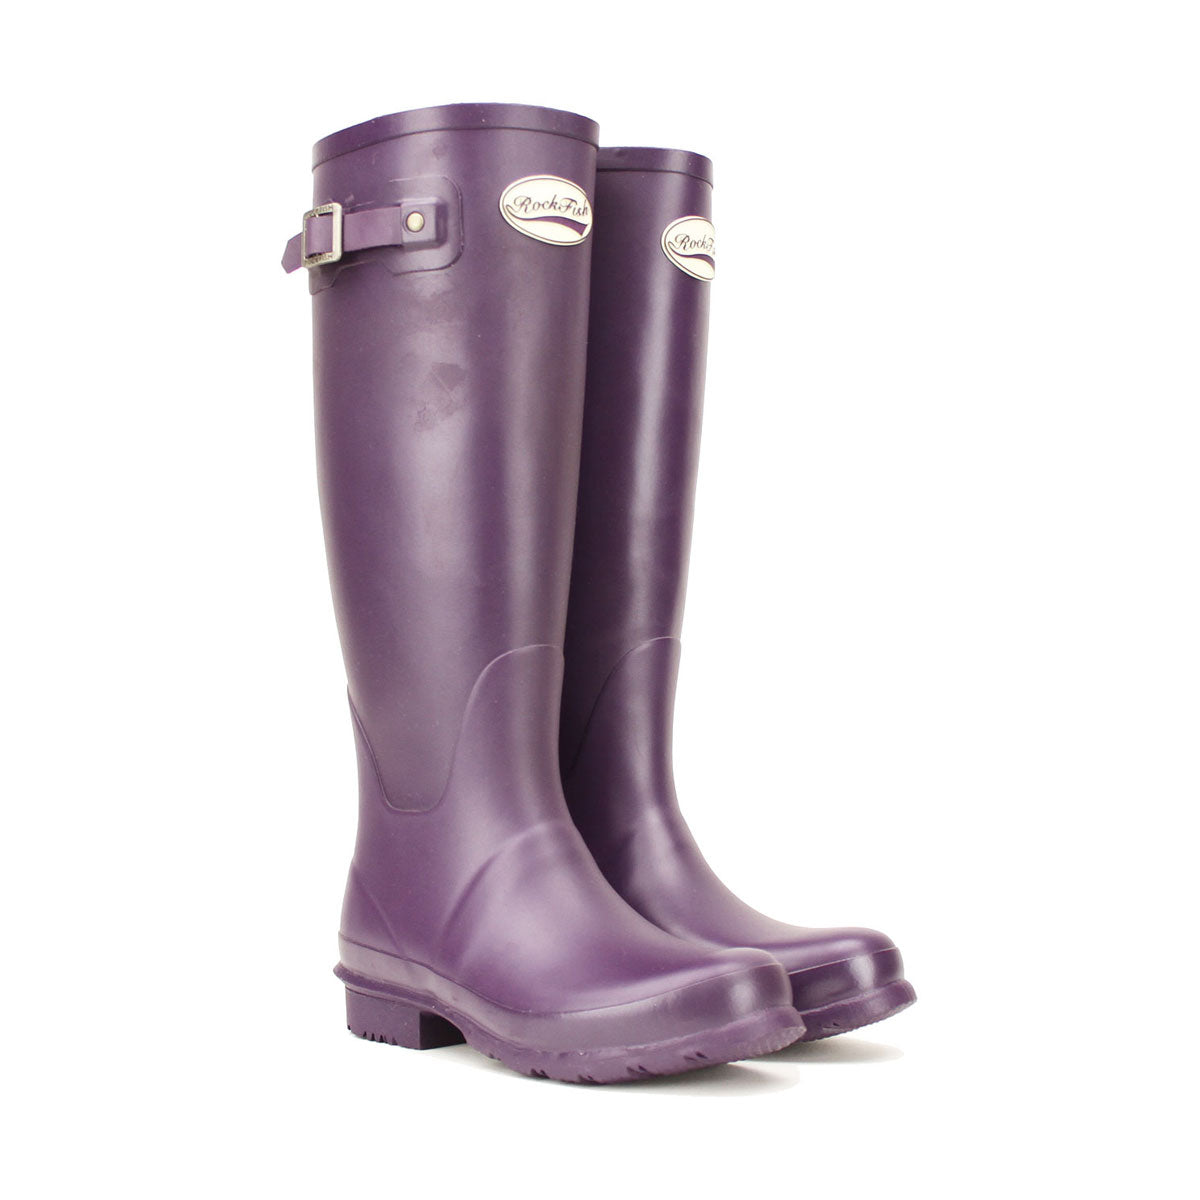 RockFish Women's Tall Standard Matt Wellington